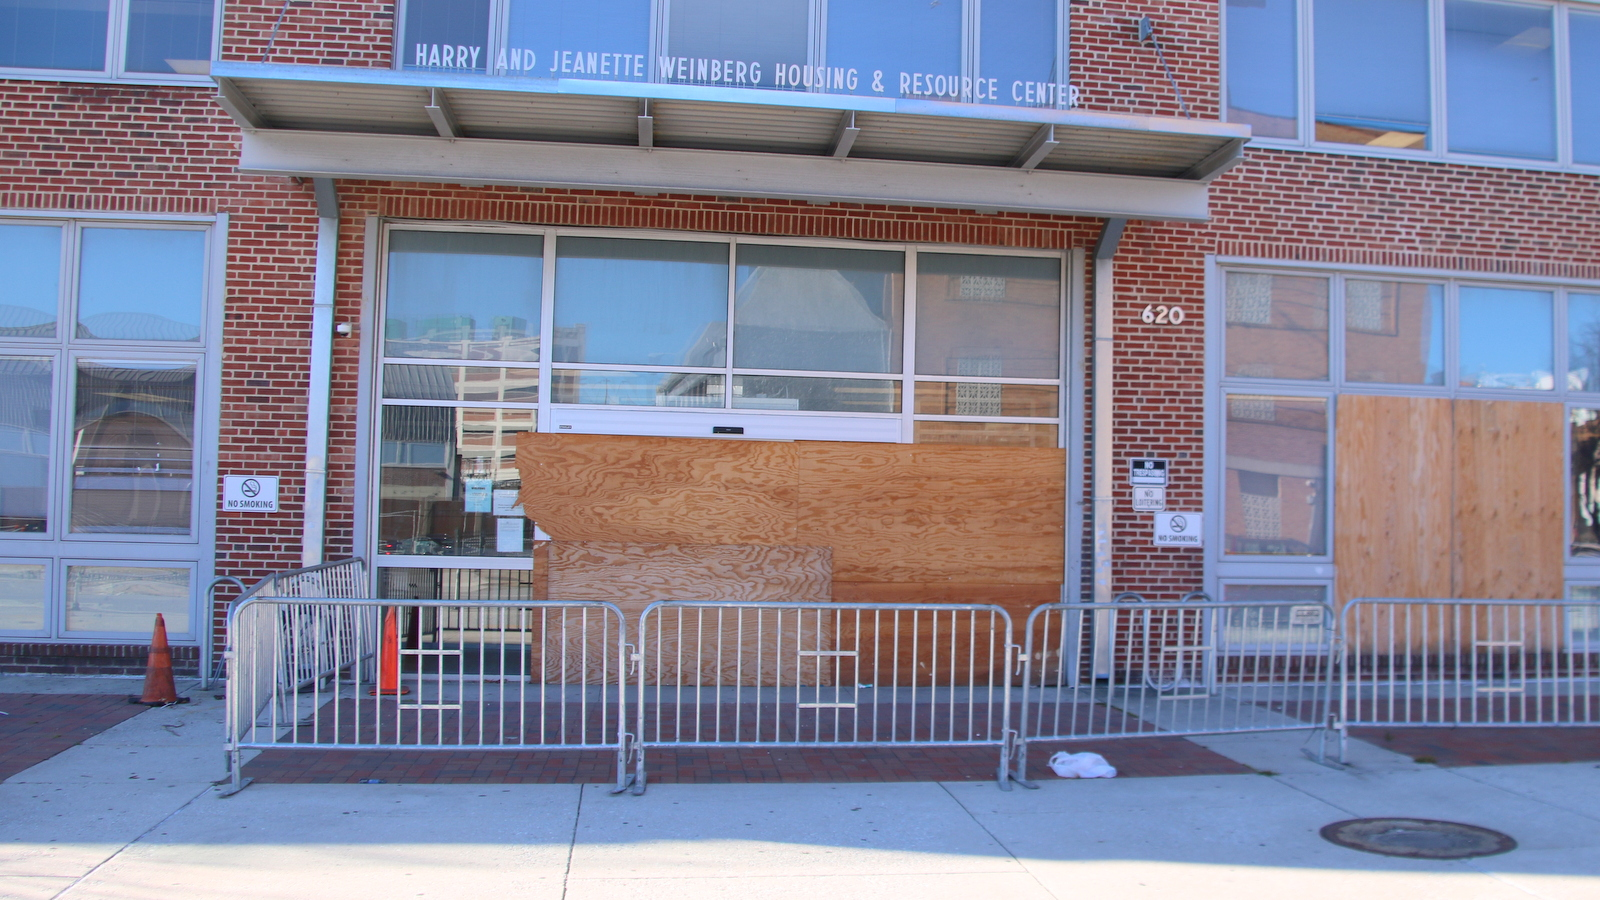 Since a Covid-19 outbreak in June, Baltimore's shelter on the Fallsway has been closed. (fern Shen)